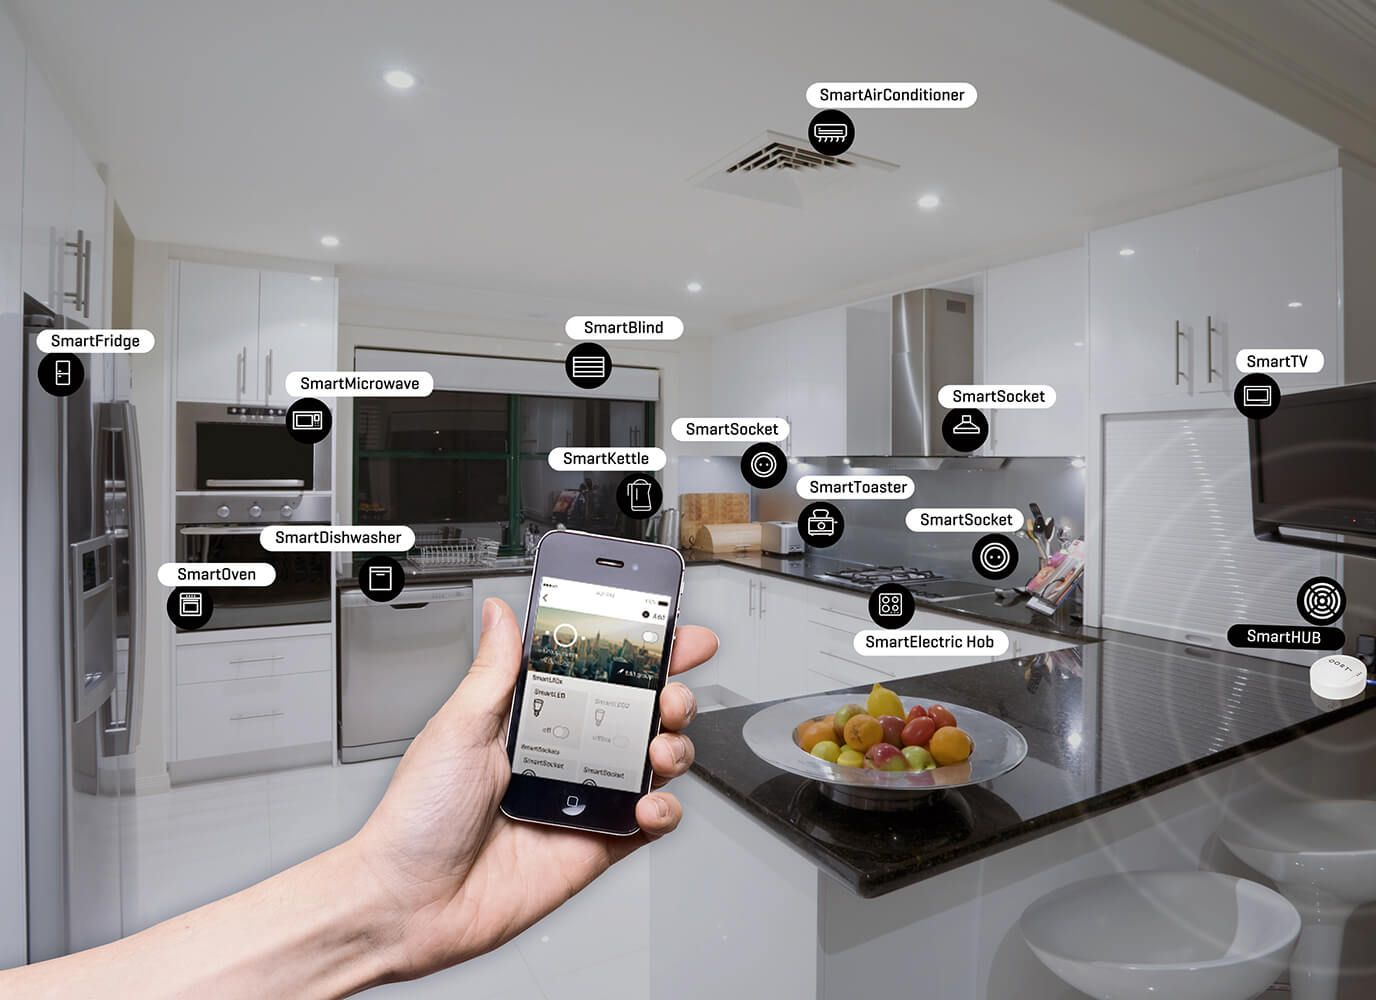 Pin on IOT DEVICES